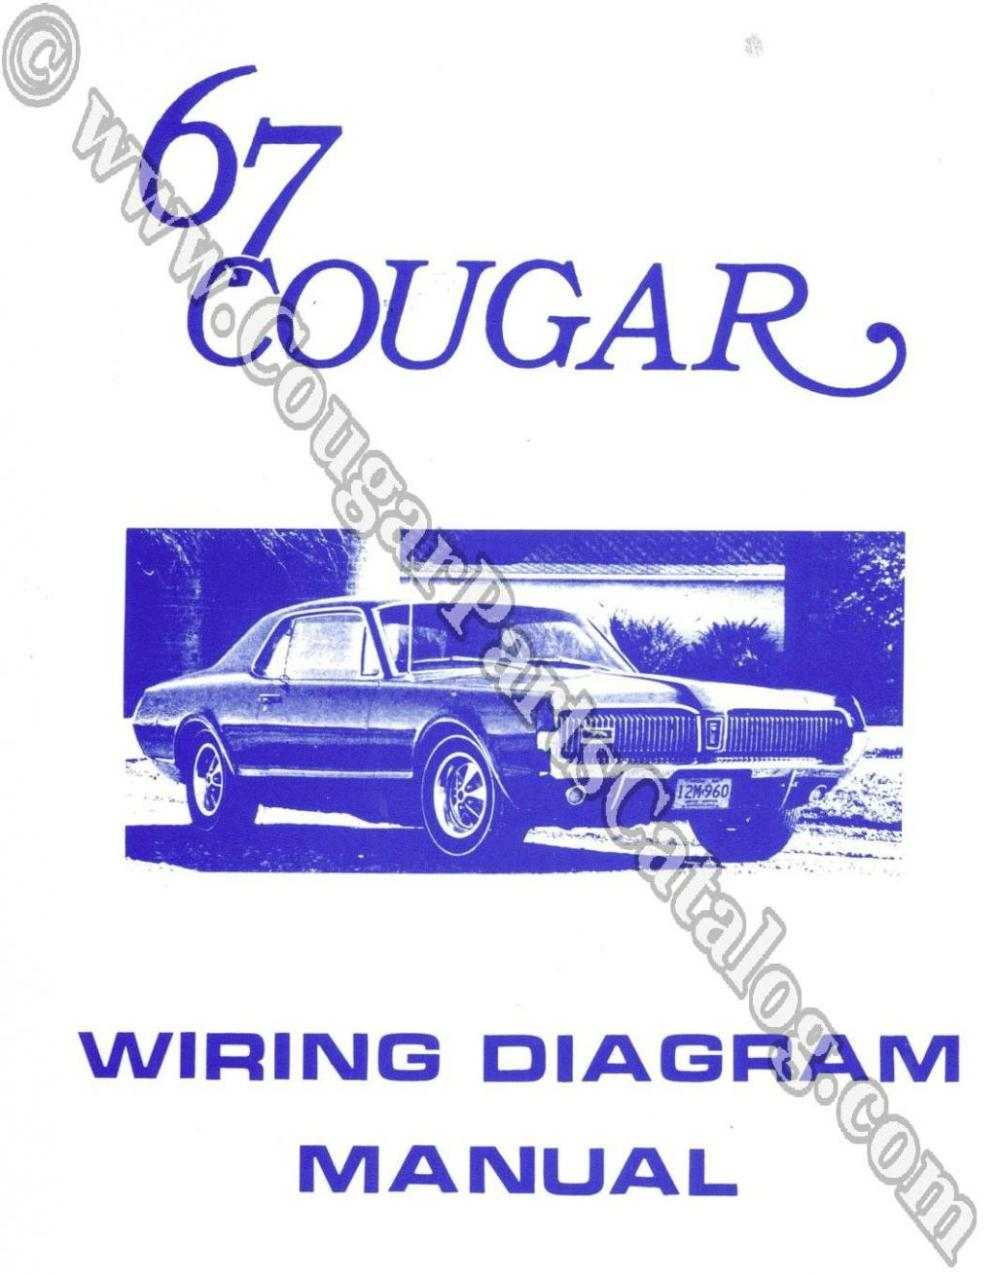 medium resolution of manual wiring diagram repro 1967 mercury cougar 25959